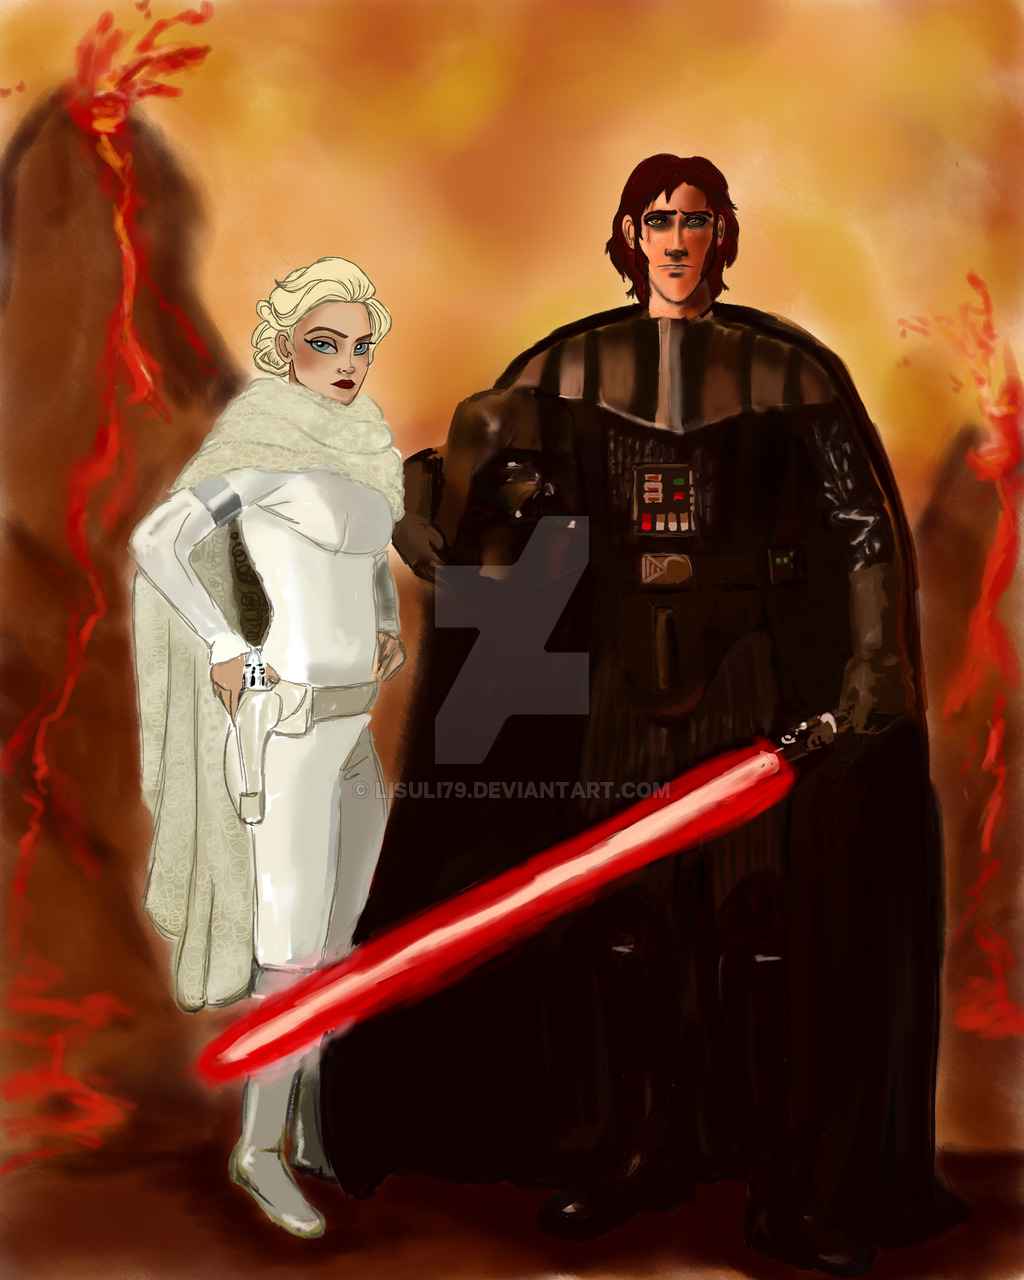 Crossovers King And Queen: Star Wars Crossover By Lisuli79-d9fva0s